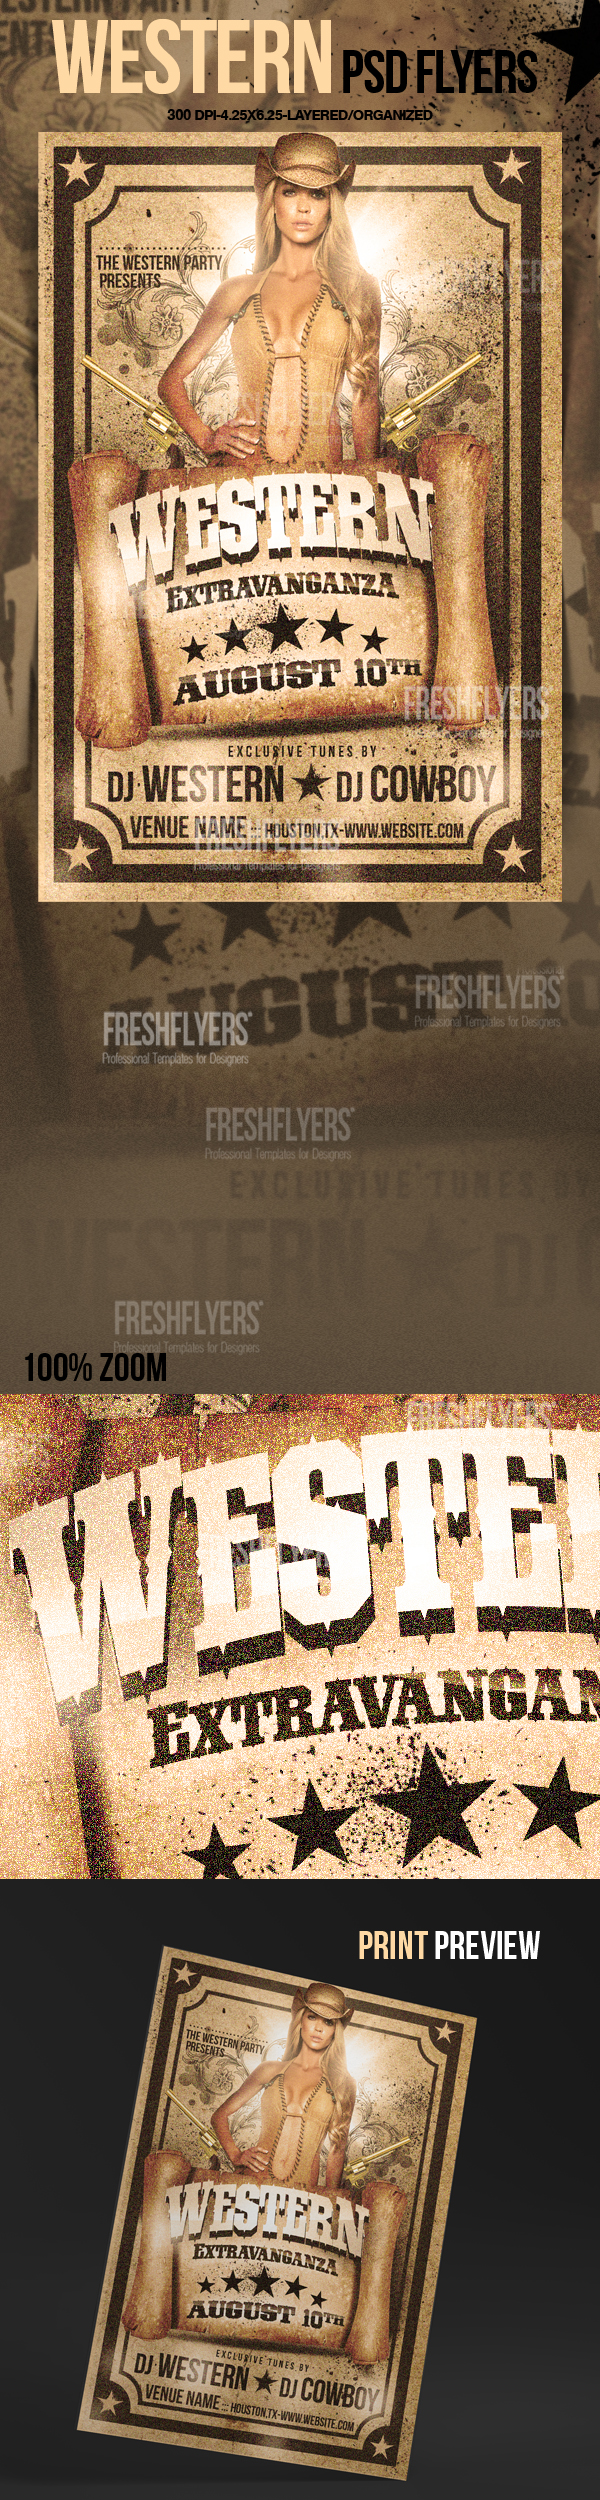 Western Most Wanted Flyer Template By Imperialflyers On Deviantart